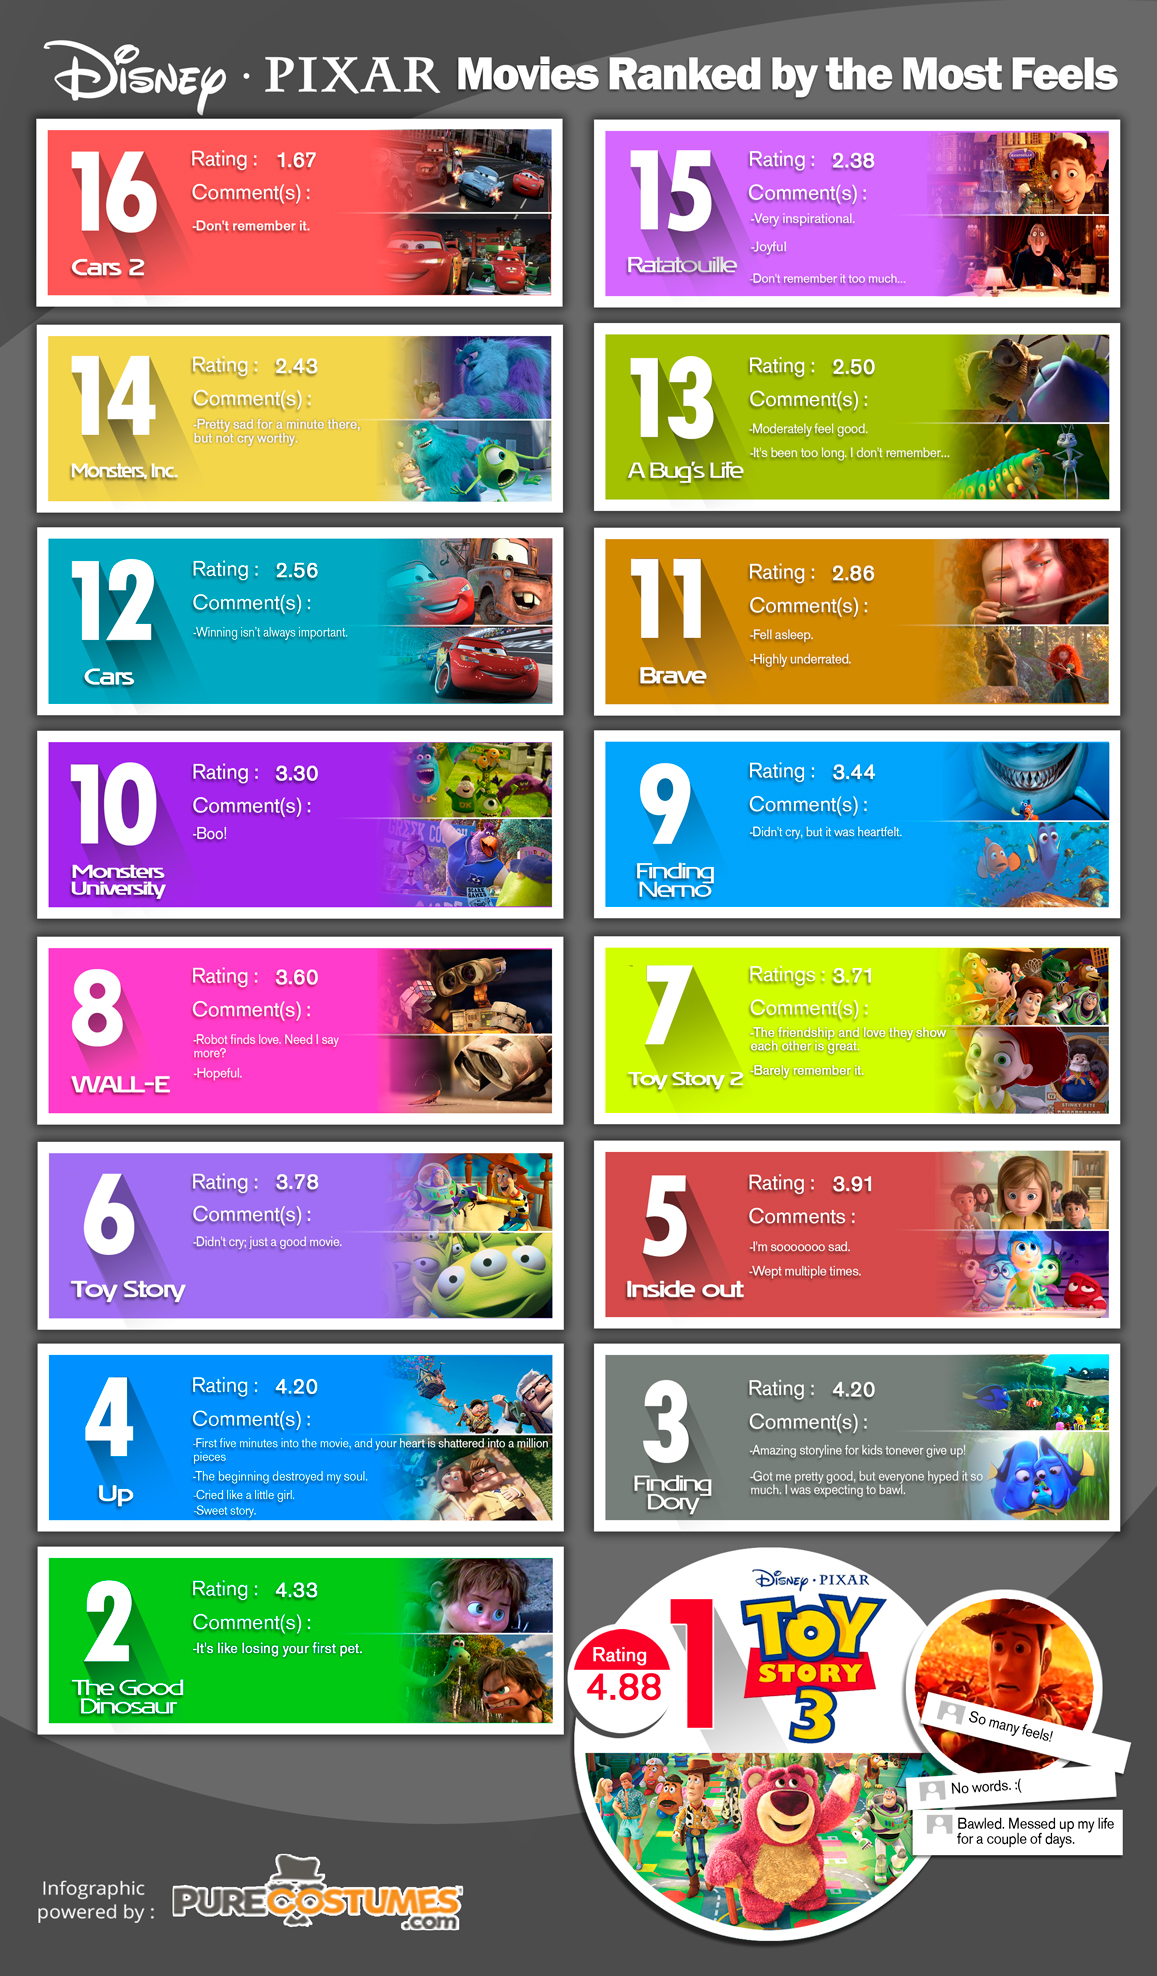 Infographic: Disney-Pixar Ranked by the Most Feels